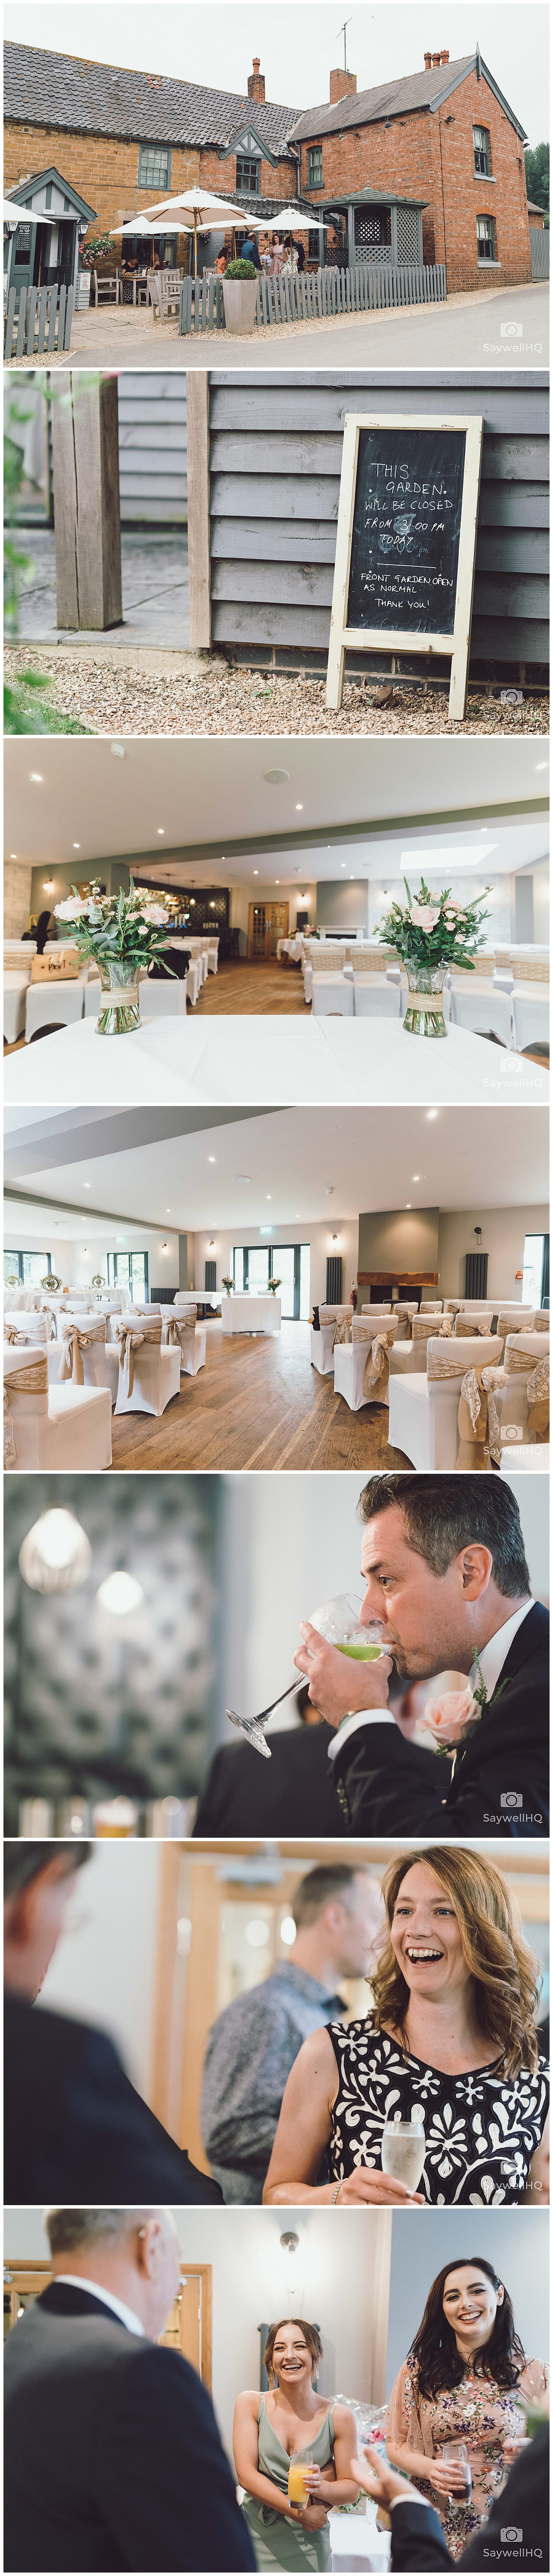 The Chequers Inn Woolsthorpe Wedding-Photography - Venue Images